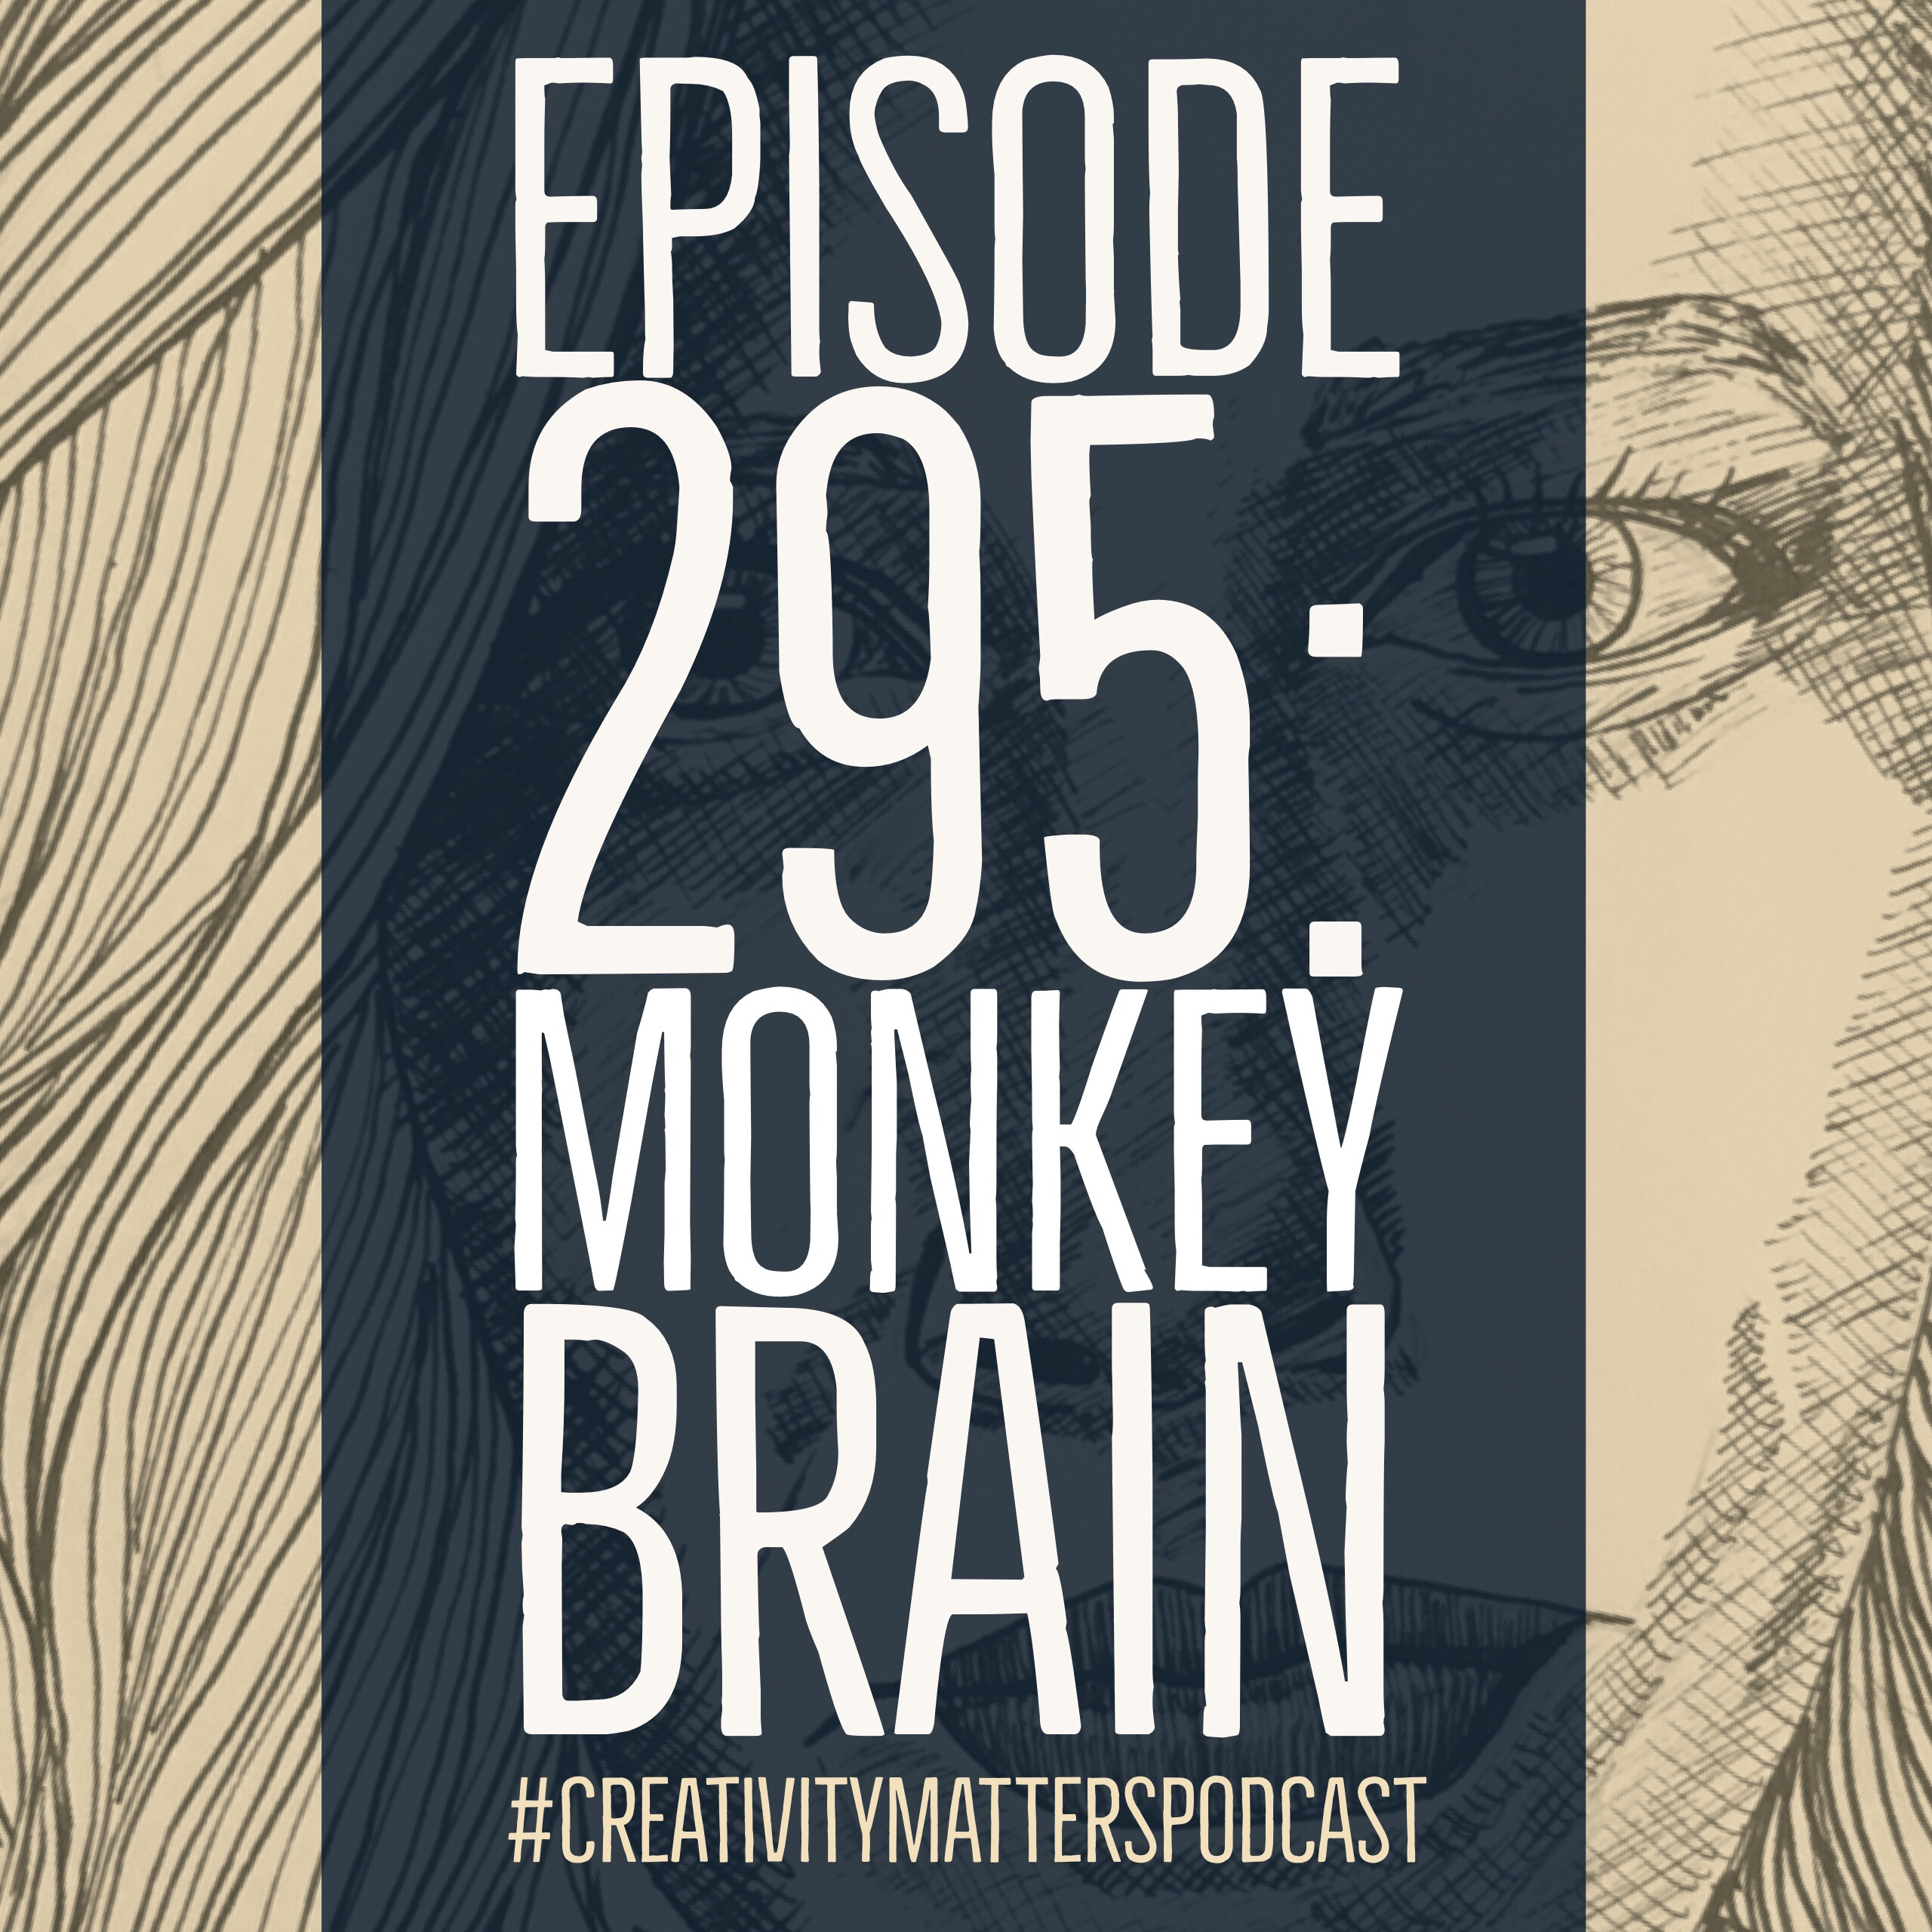 Episode 295: Monkey Brain